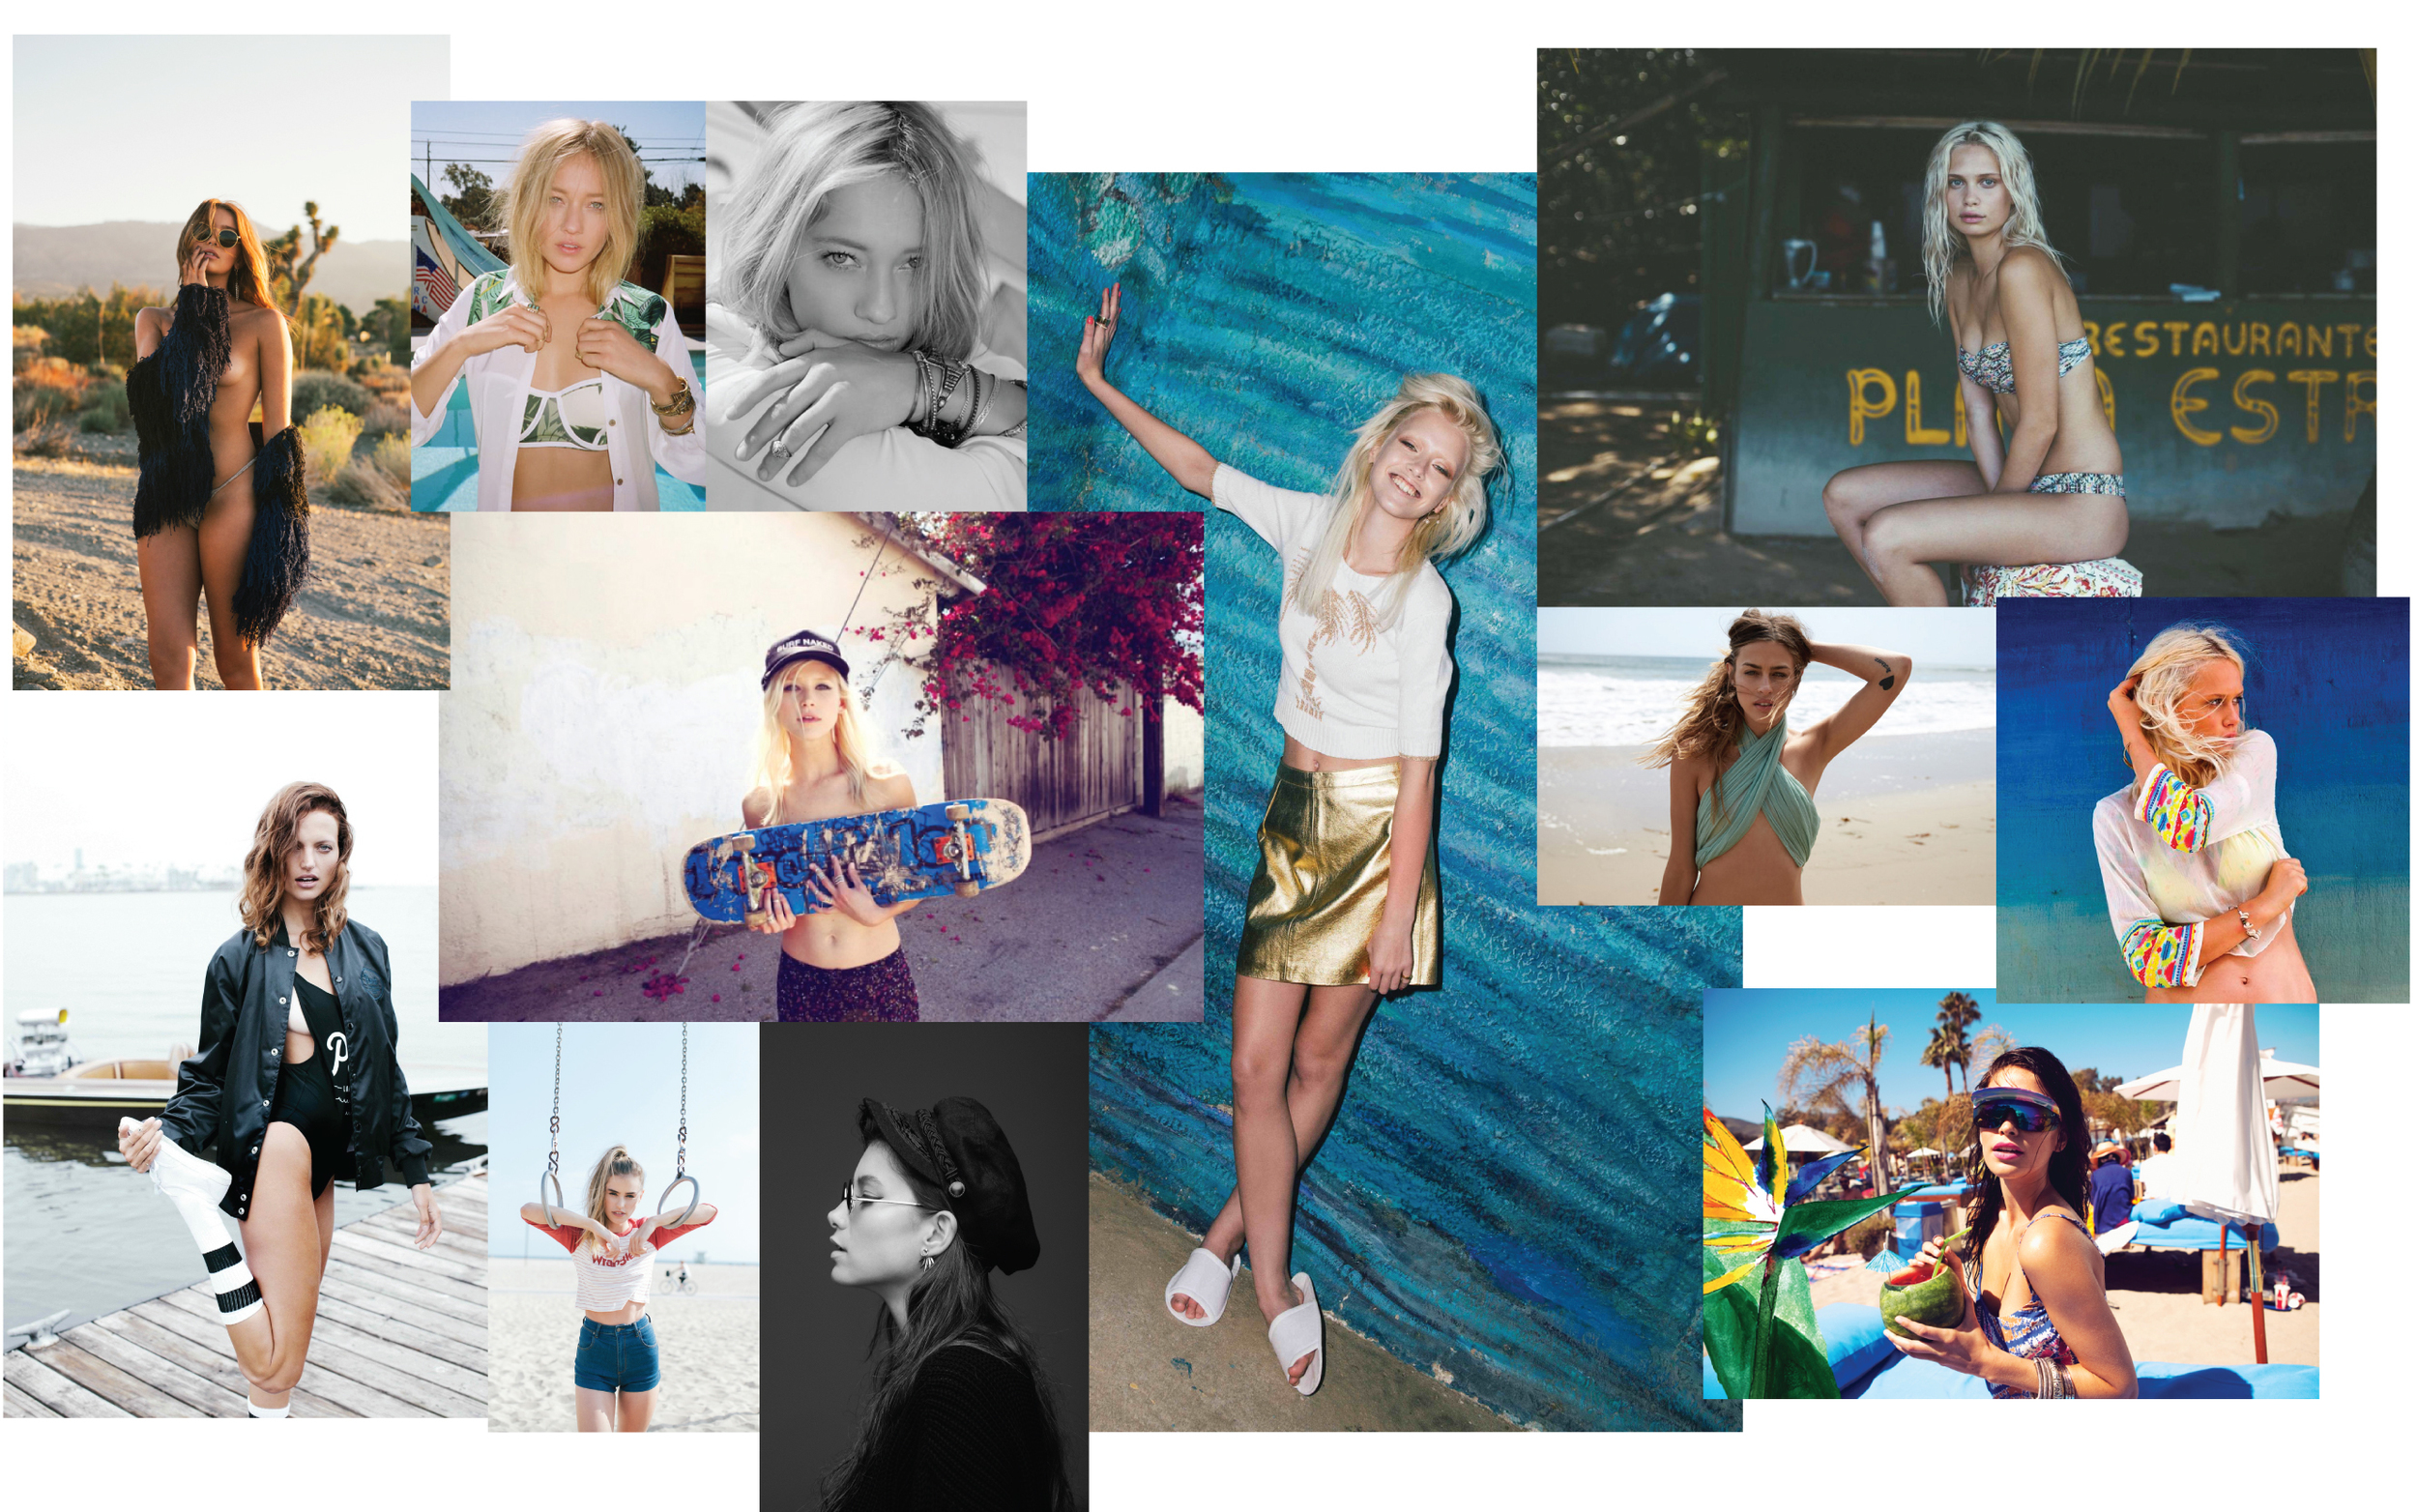 Examples of Sarah's Styling Work with Wrangler, Planet Blue, For Love and Lemons, Nasty Gal, Billabong, Jason Lee Parry, Pierre Toussaint, Amanda Booth, Zoe Grossman, Cailin Russo, Lilah Parillo to name a few.